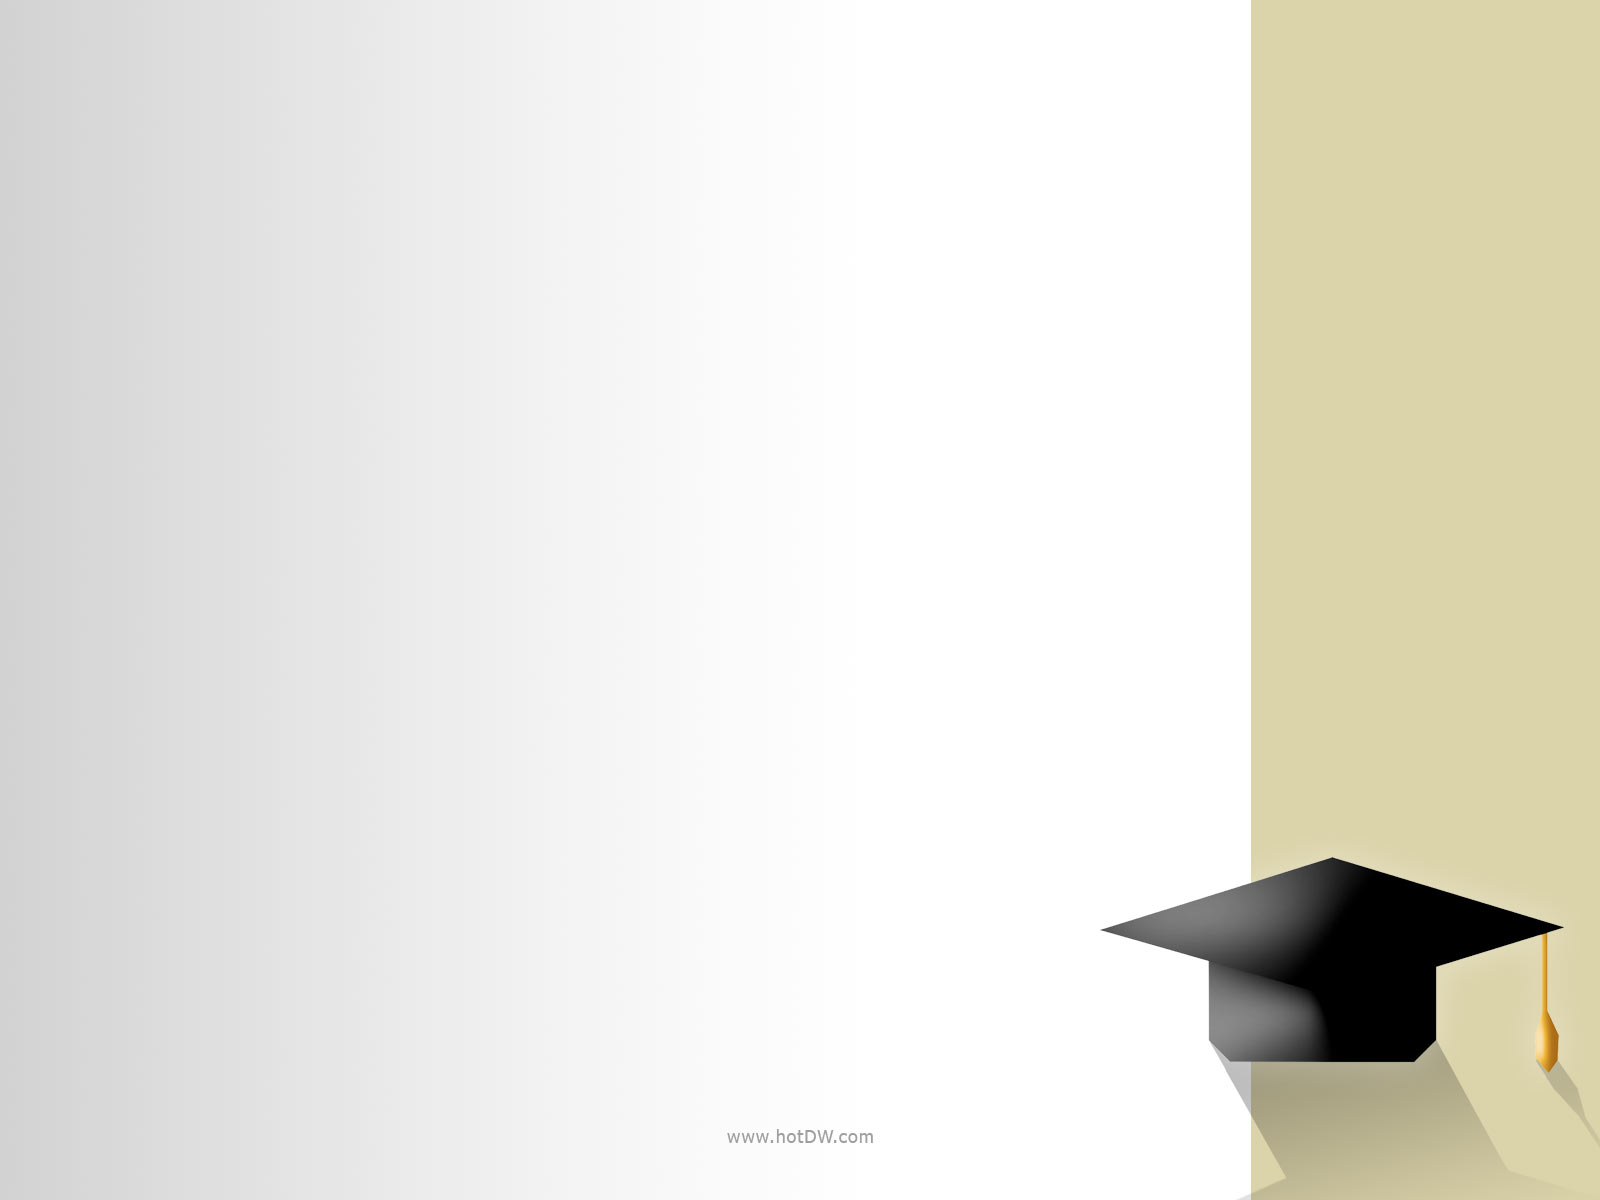 Graduation Ppt Background Ppt Backgrounds Remove this image, Download